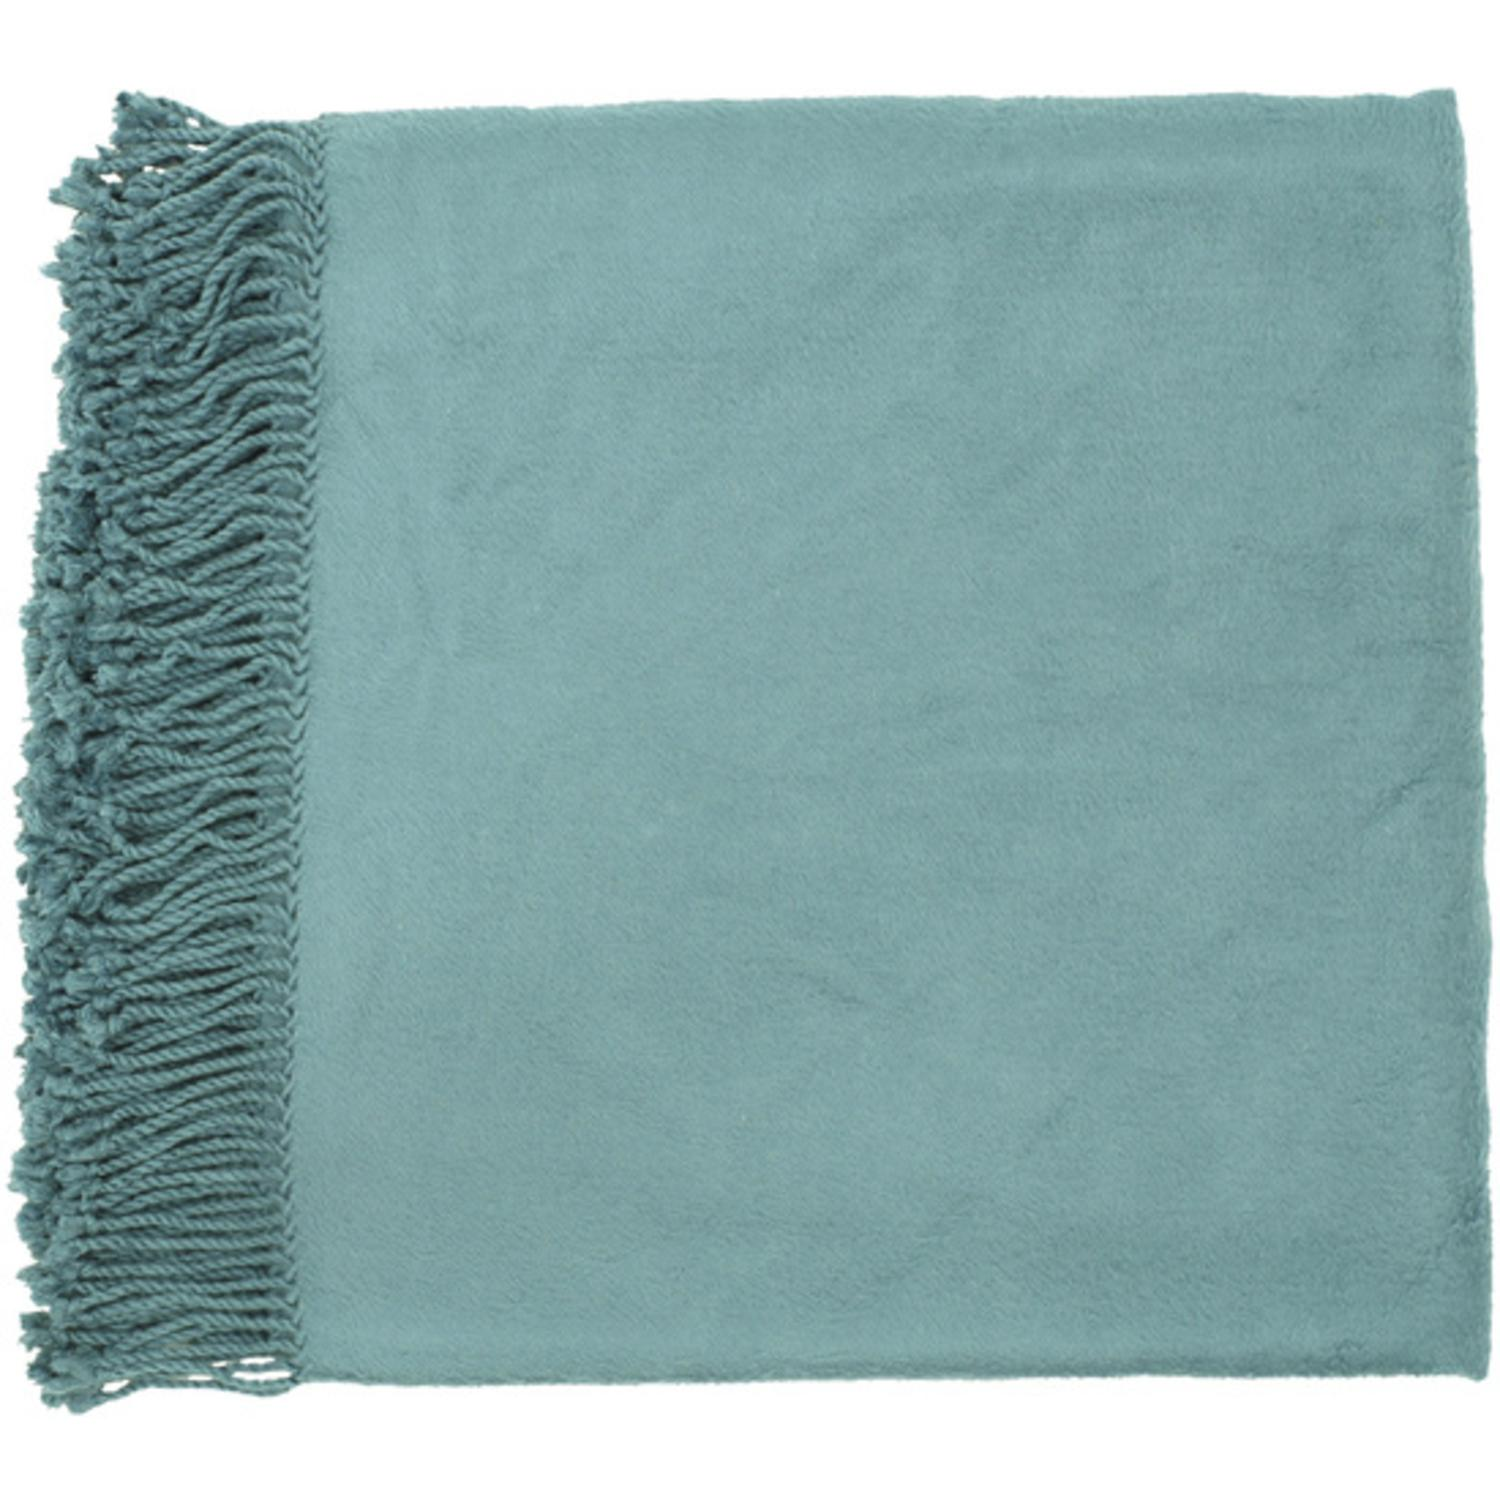 """50"""" x 67"""" Right At Home Cozy Blue-Green Teal Throw Blanket"""